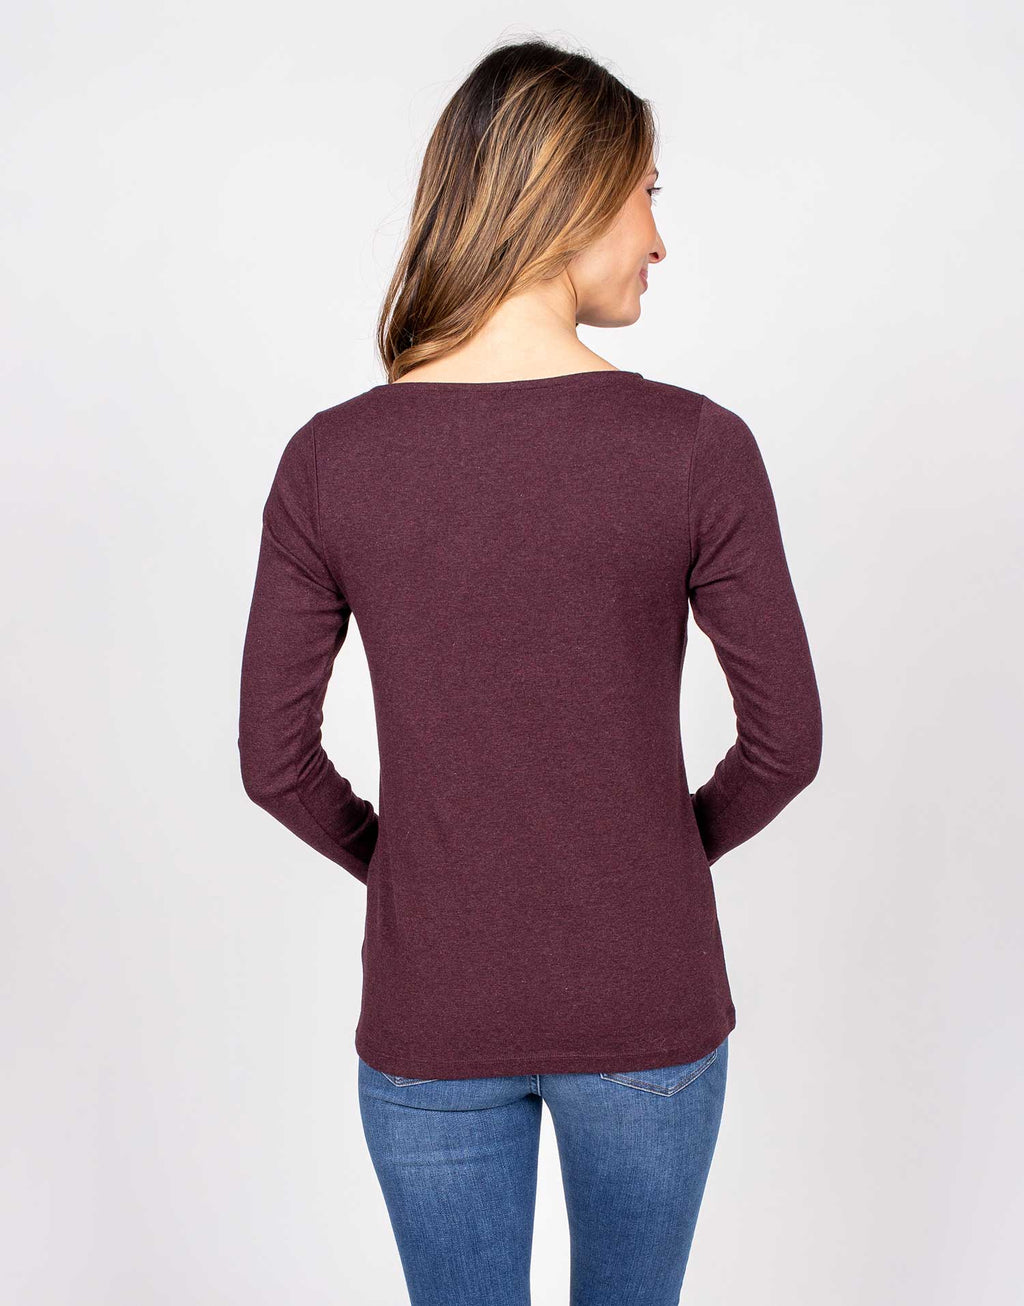 Organic Cotton Long-sleeved Boatneck Tee